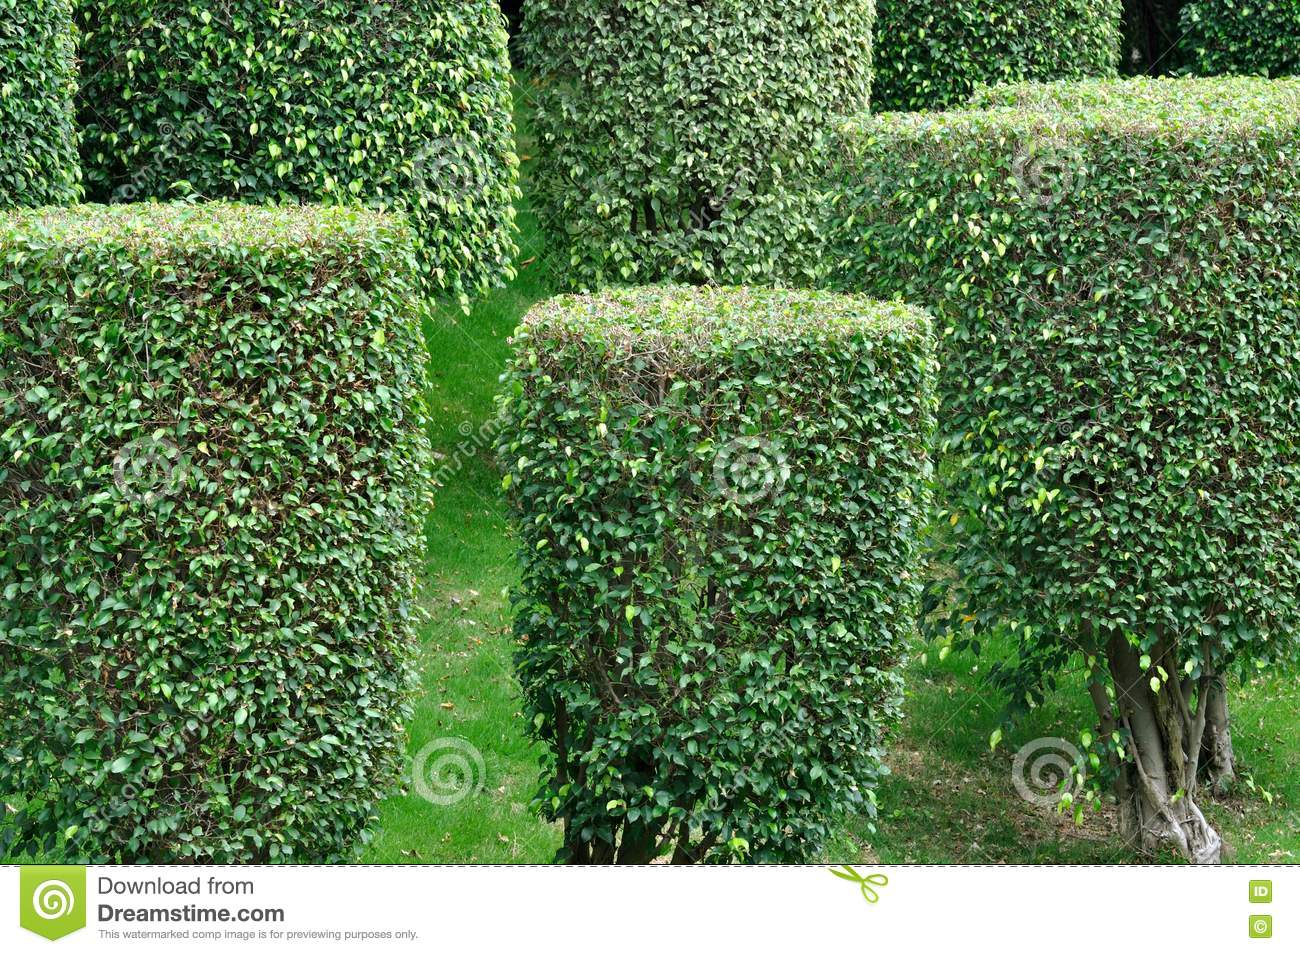 Garden Design Garden Design with Bushes PNG images free download